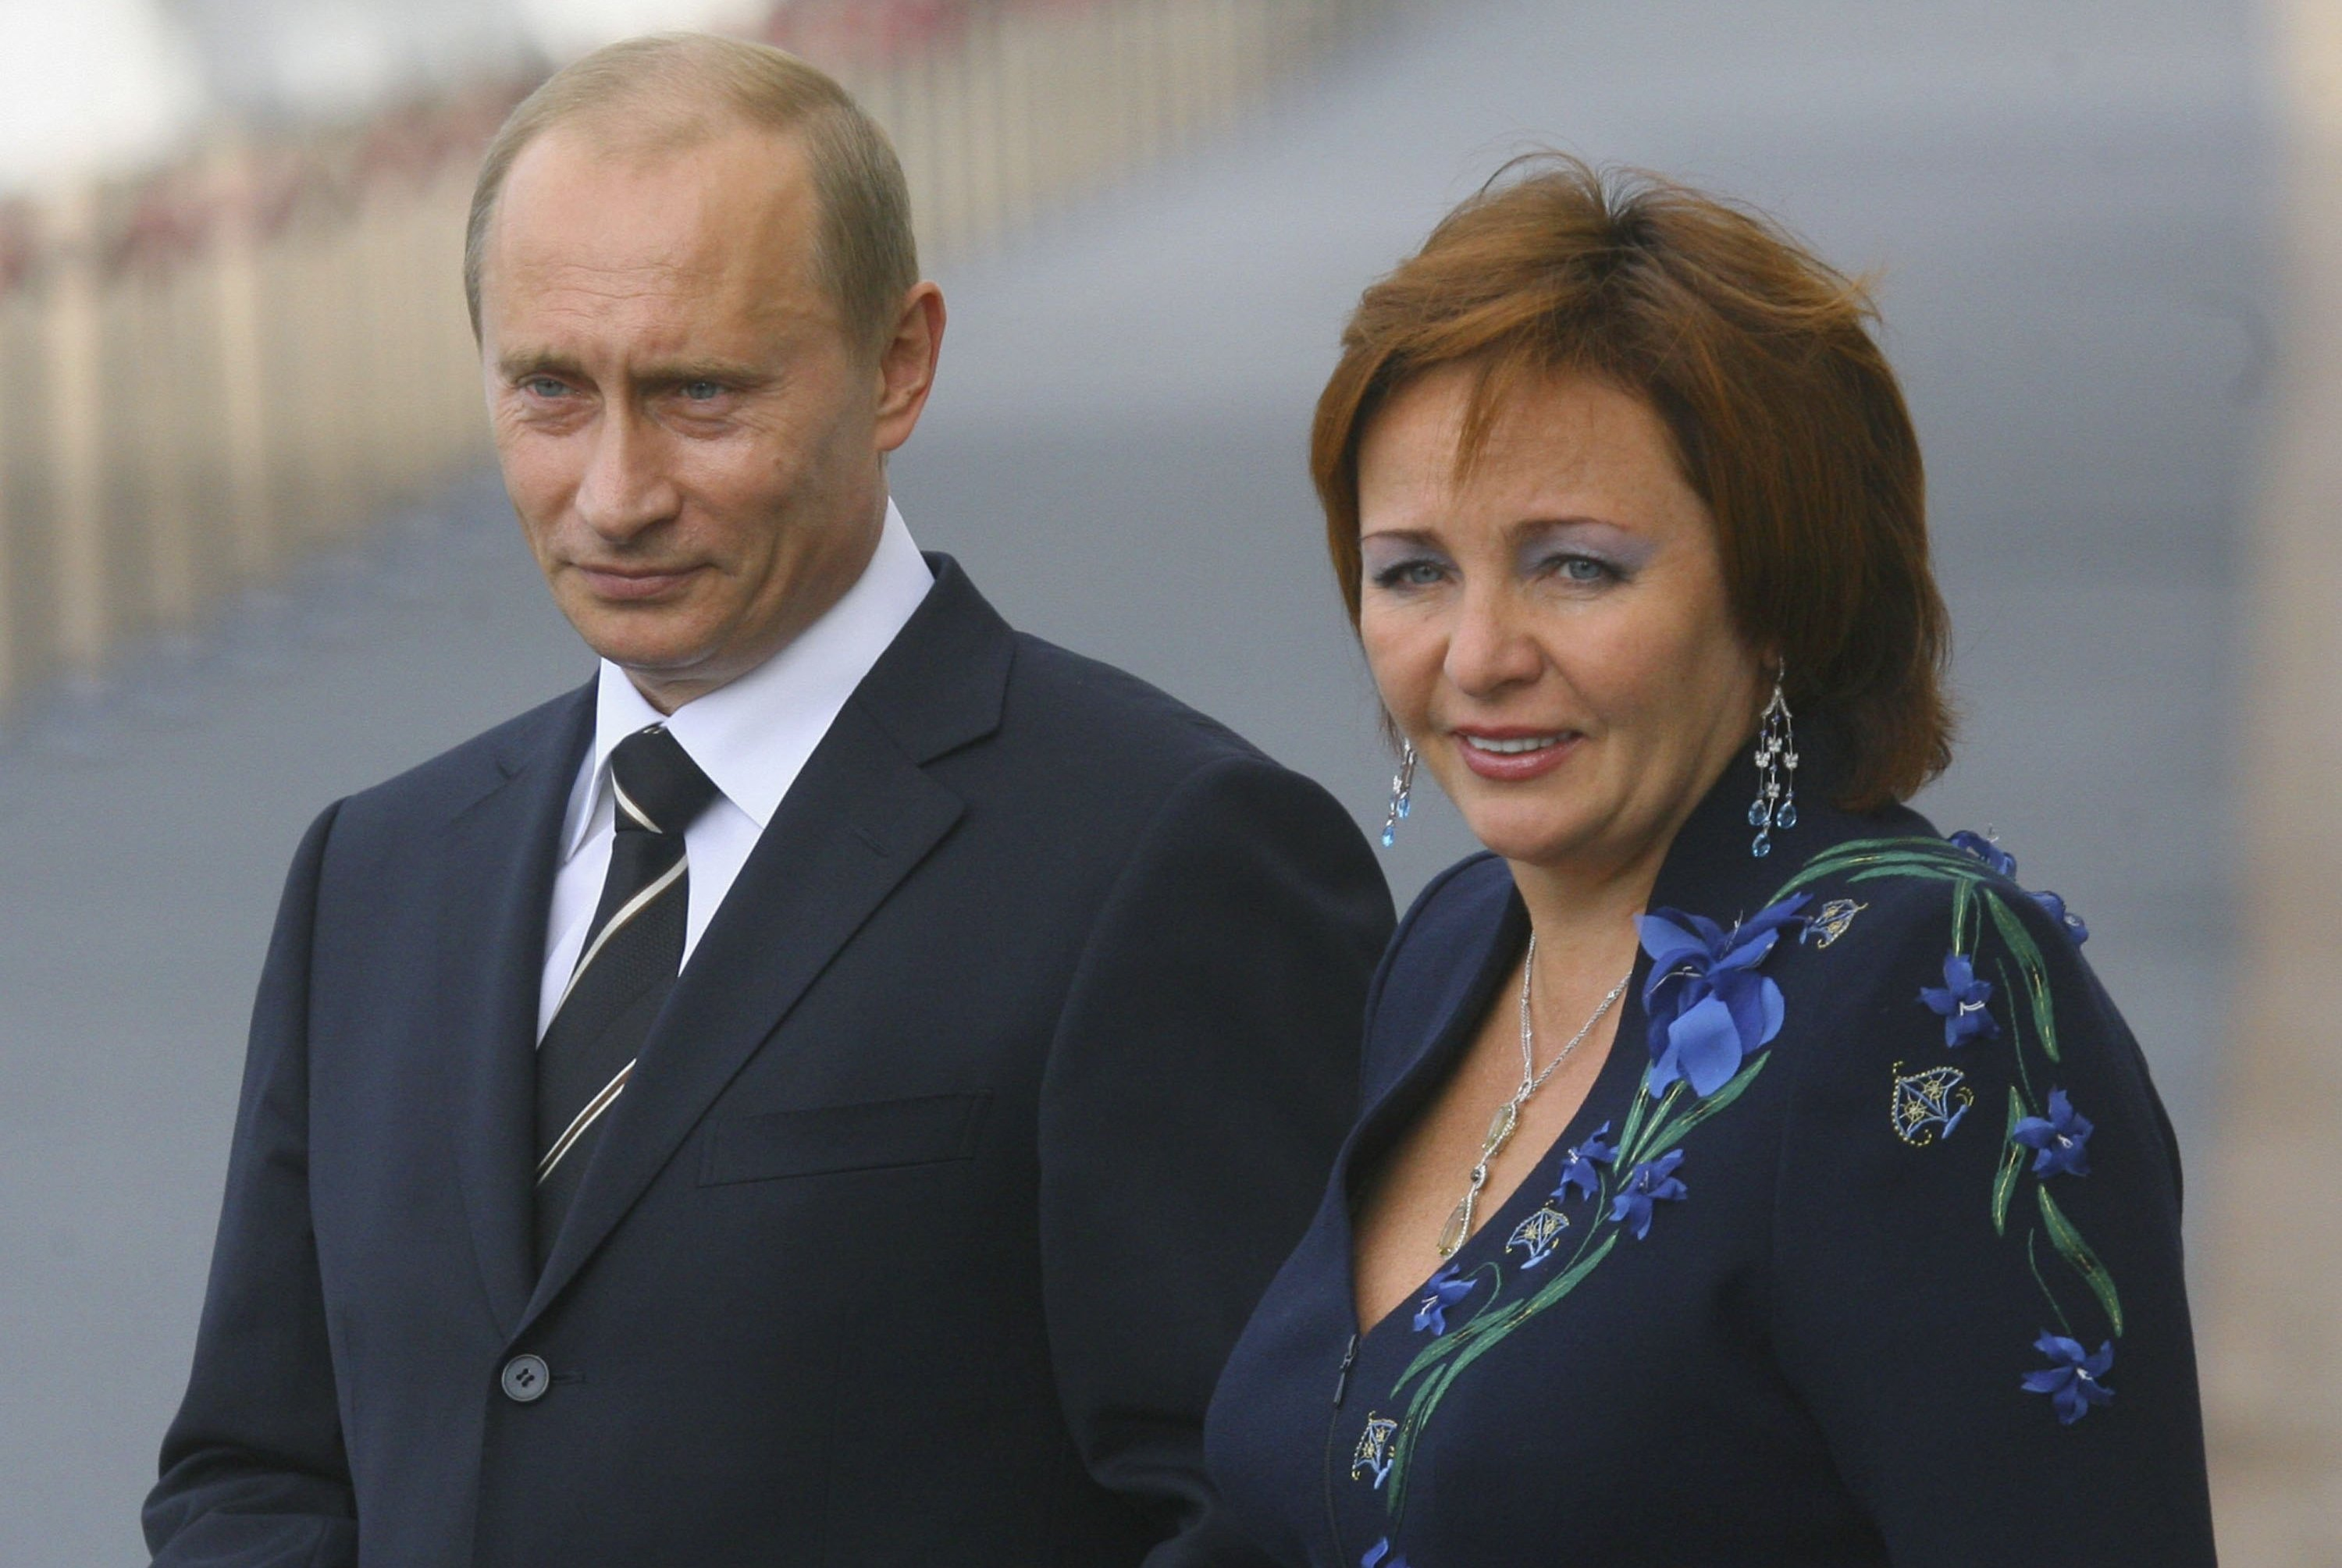 Russian President Vladimir Putin Wife Call It Quits The Two Way Npr